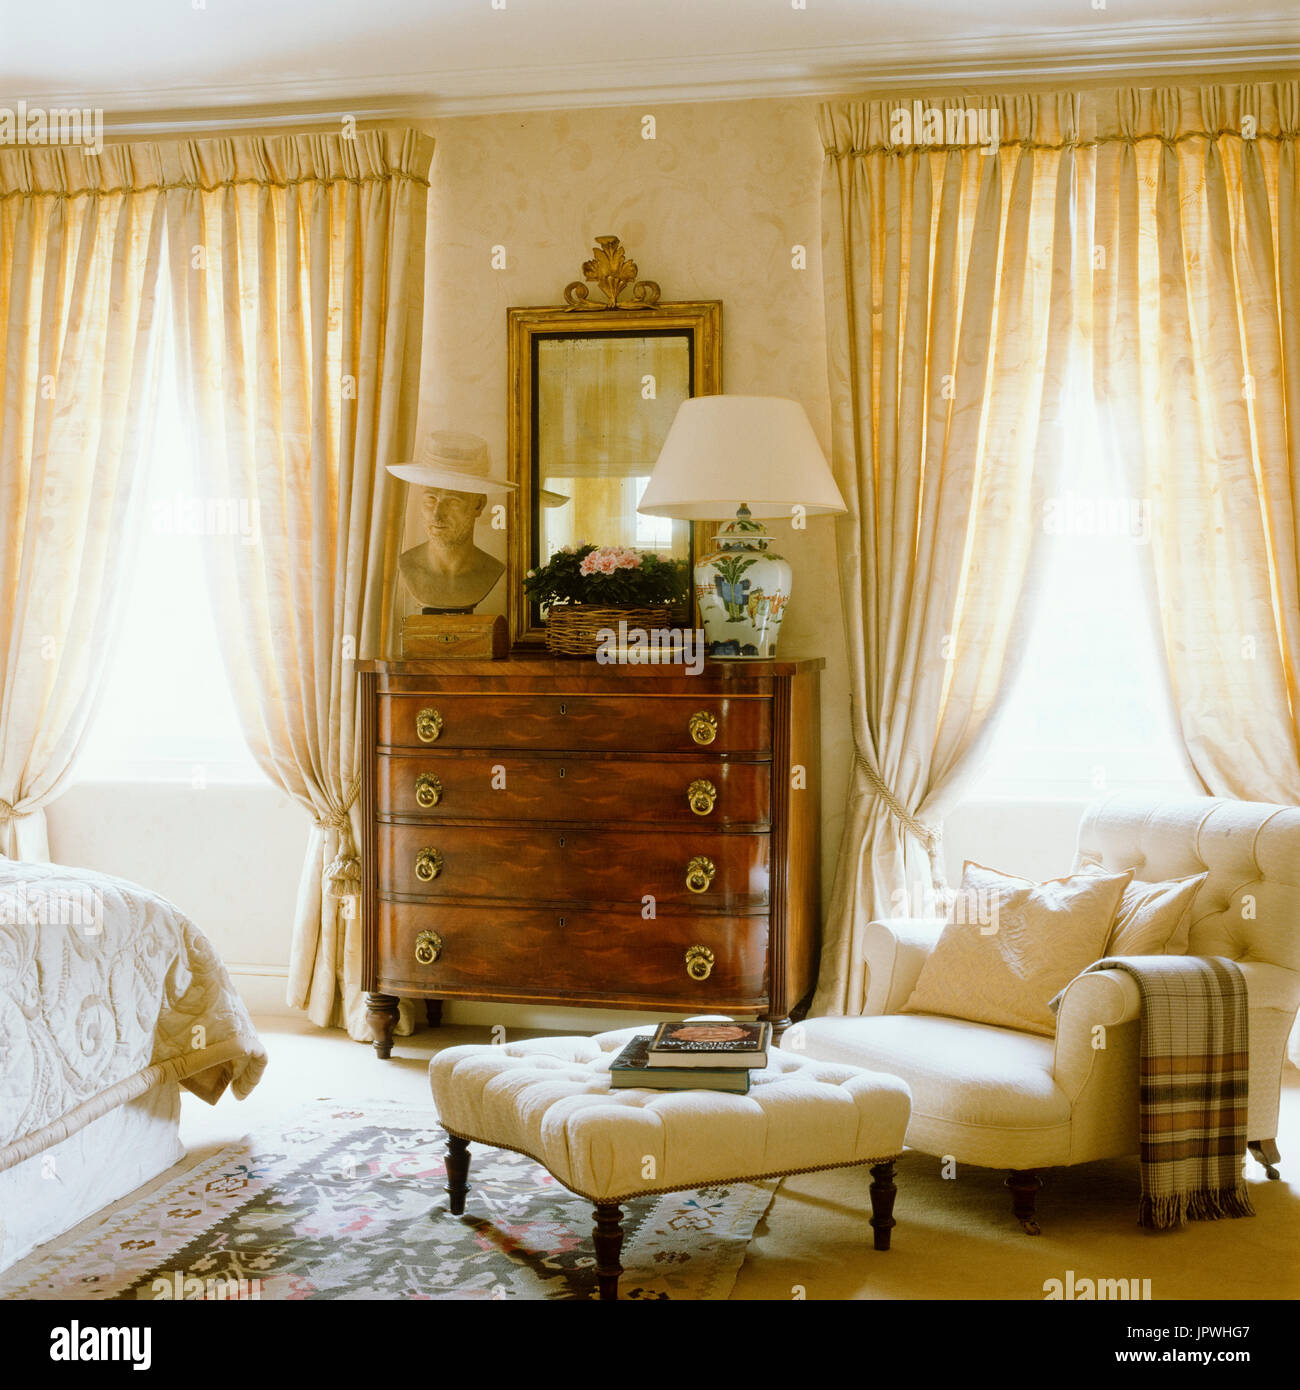 Luxurious country style bedroom - Stock Image